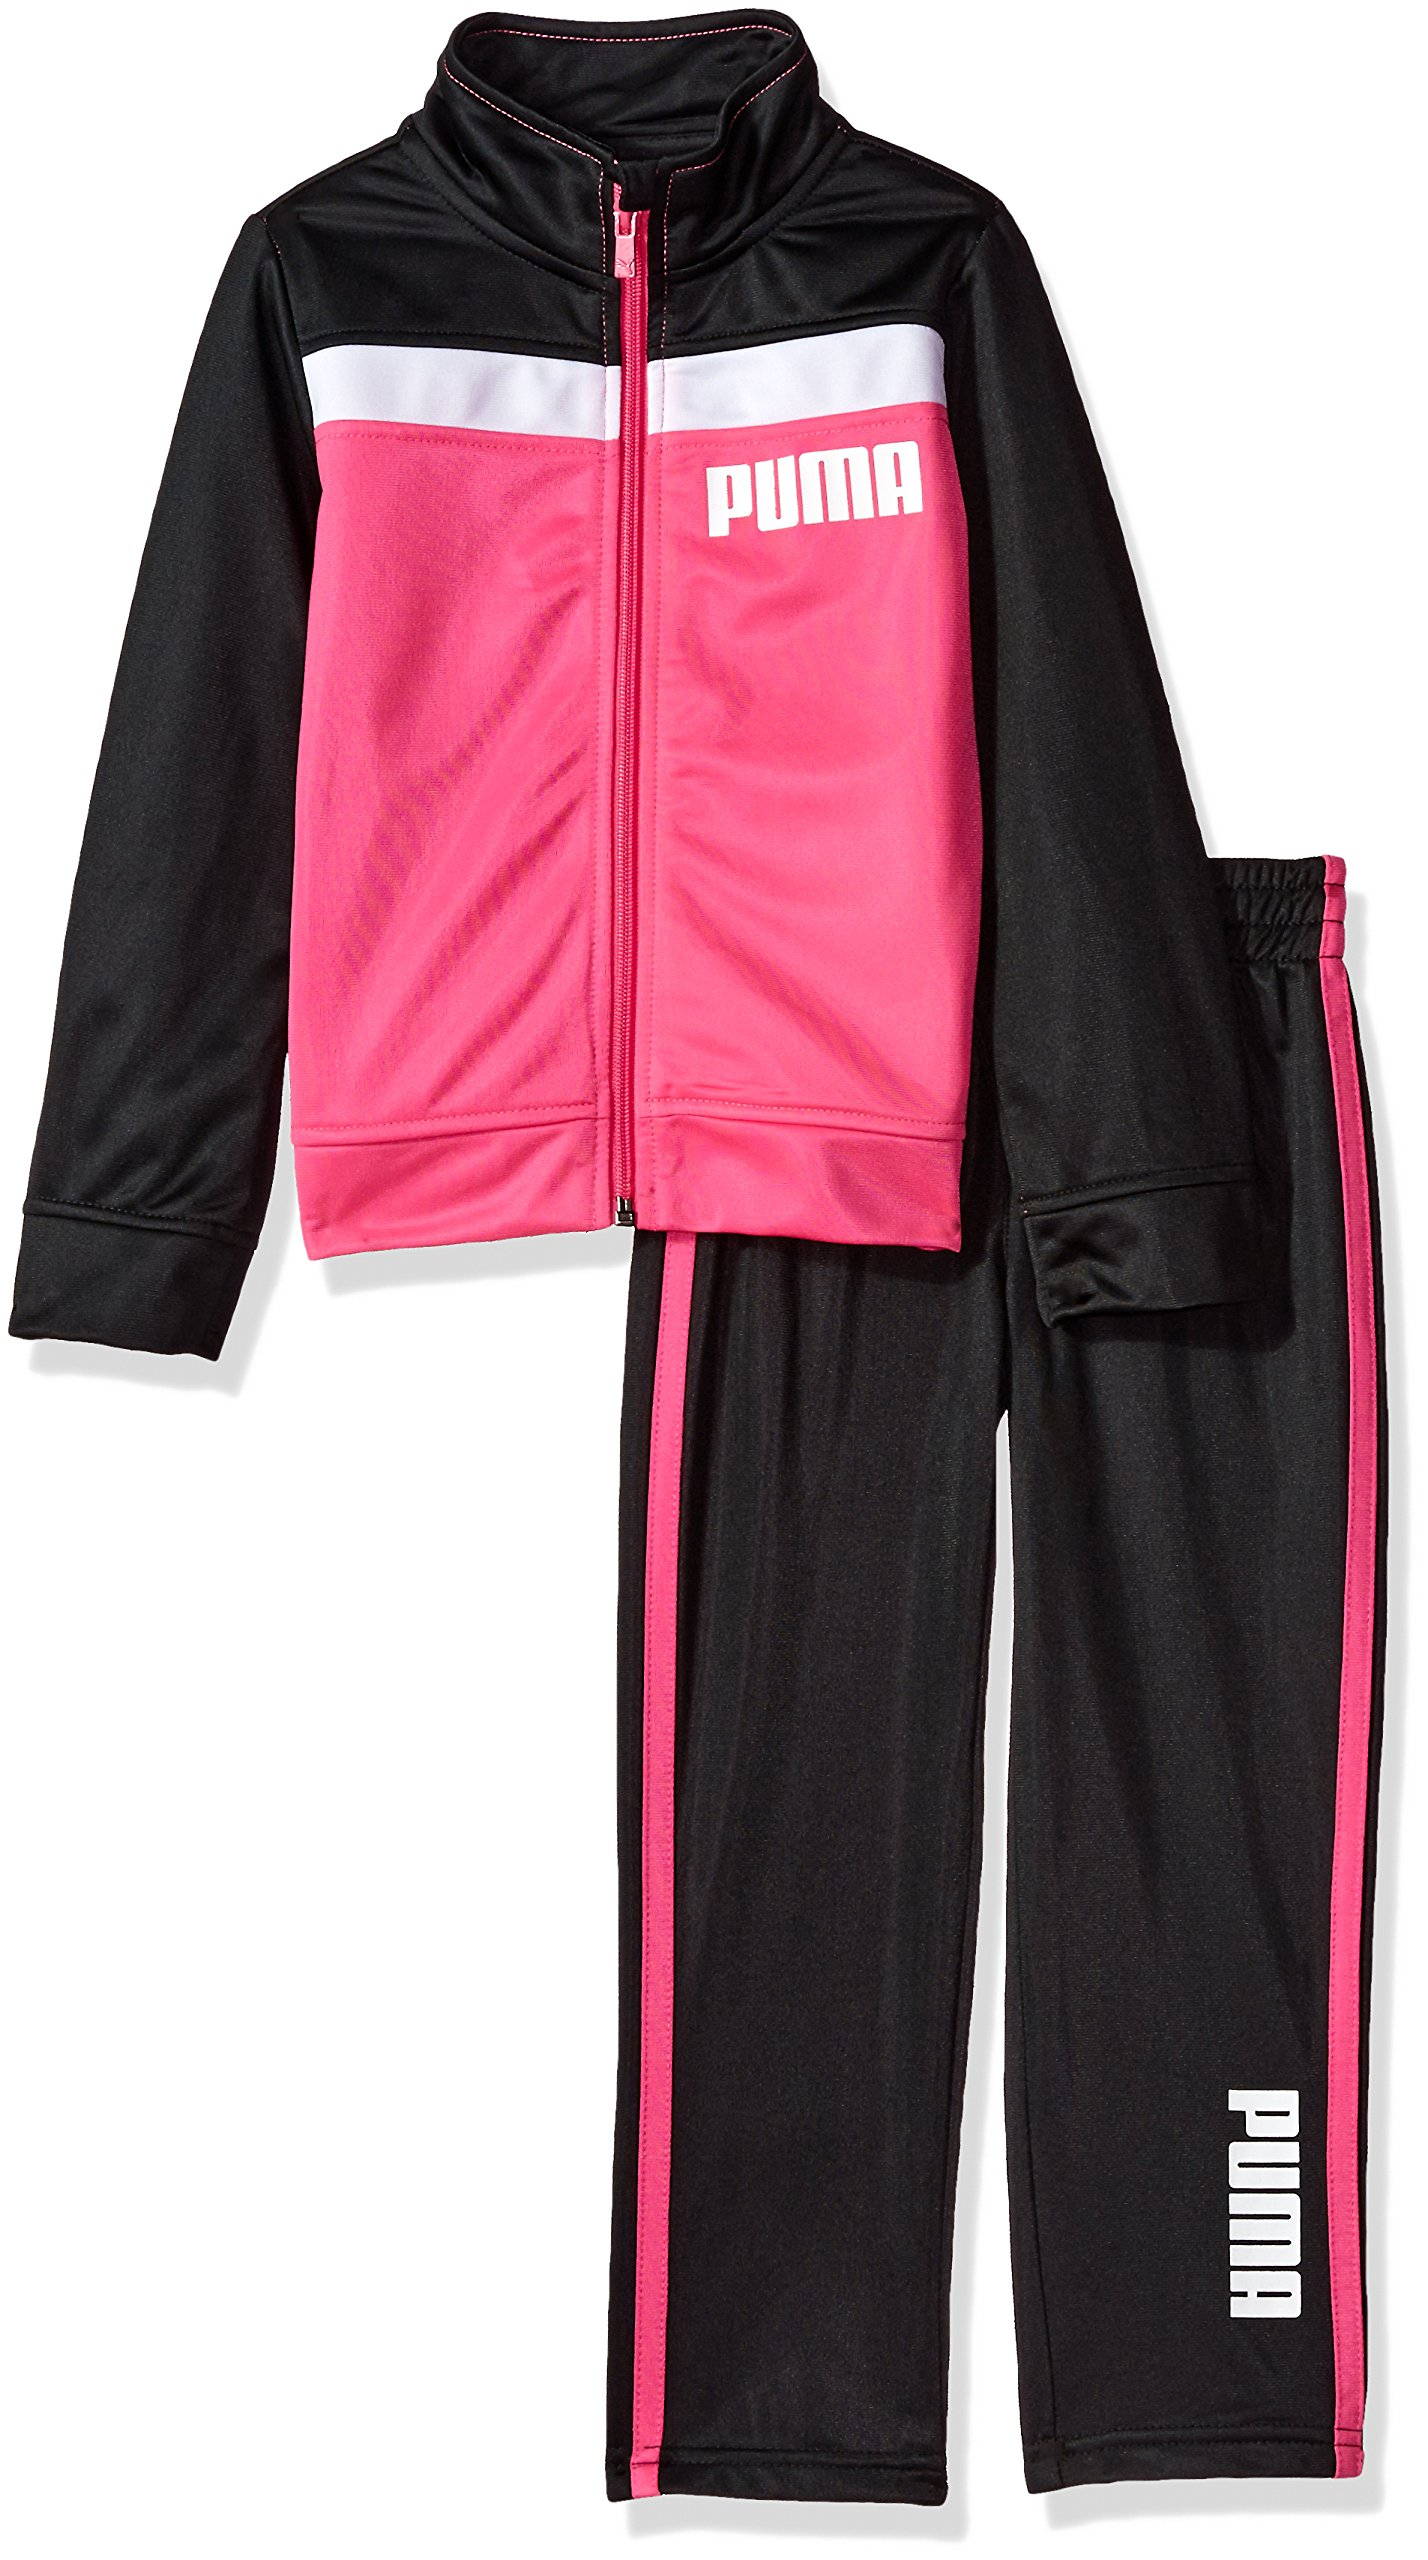 PUMA Girls Tricot Tracksuit Set product image